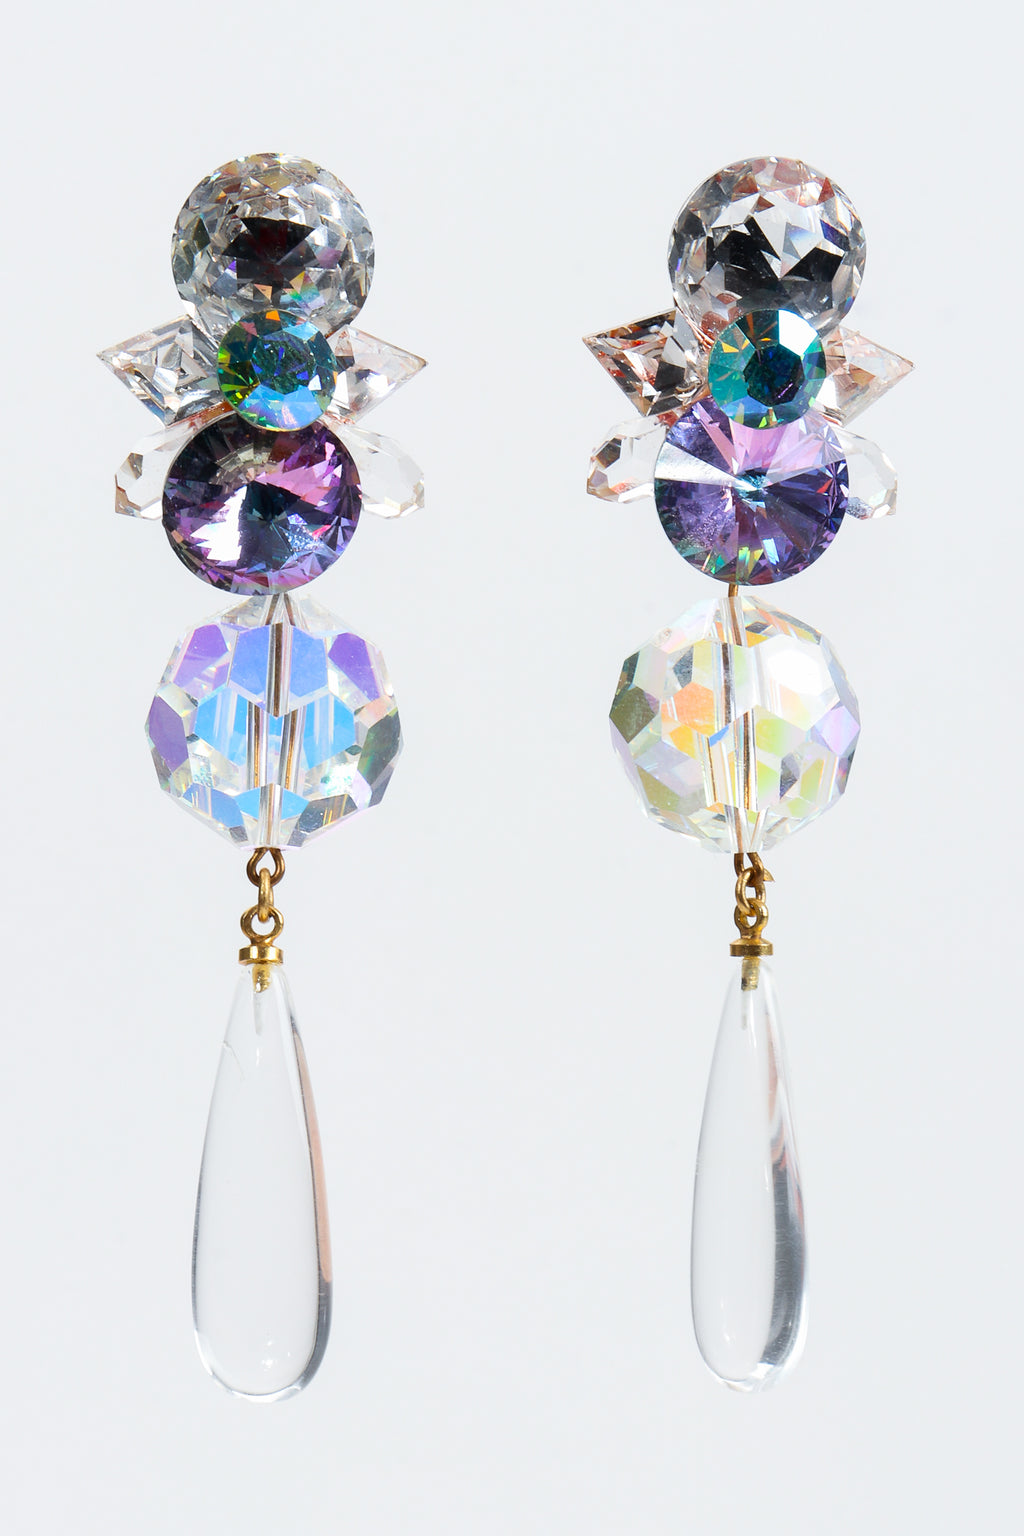 Vintage Wendy Gell Iridescent Crystal Teardrop Earrings at Recess Los Angeles